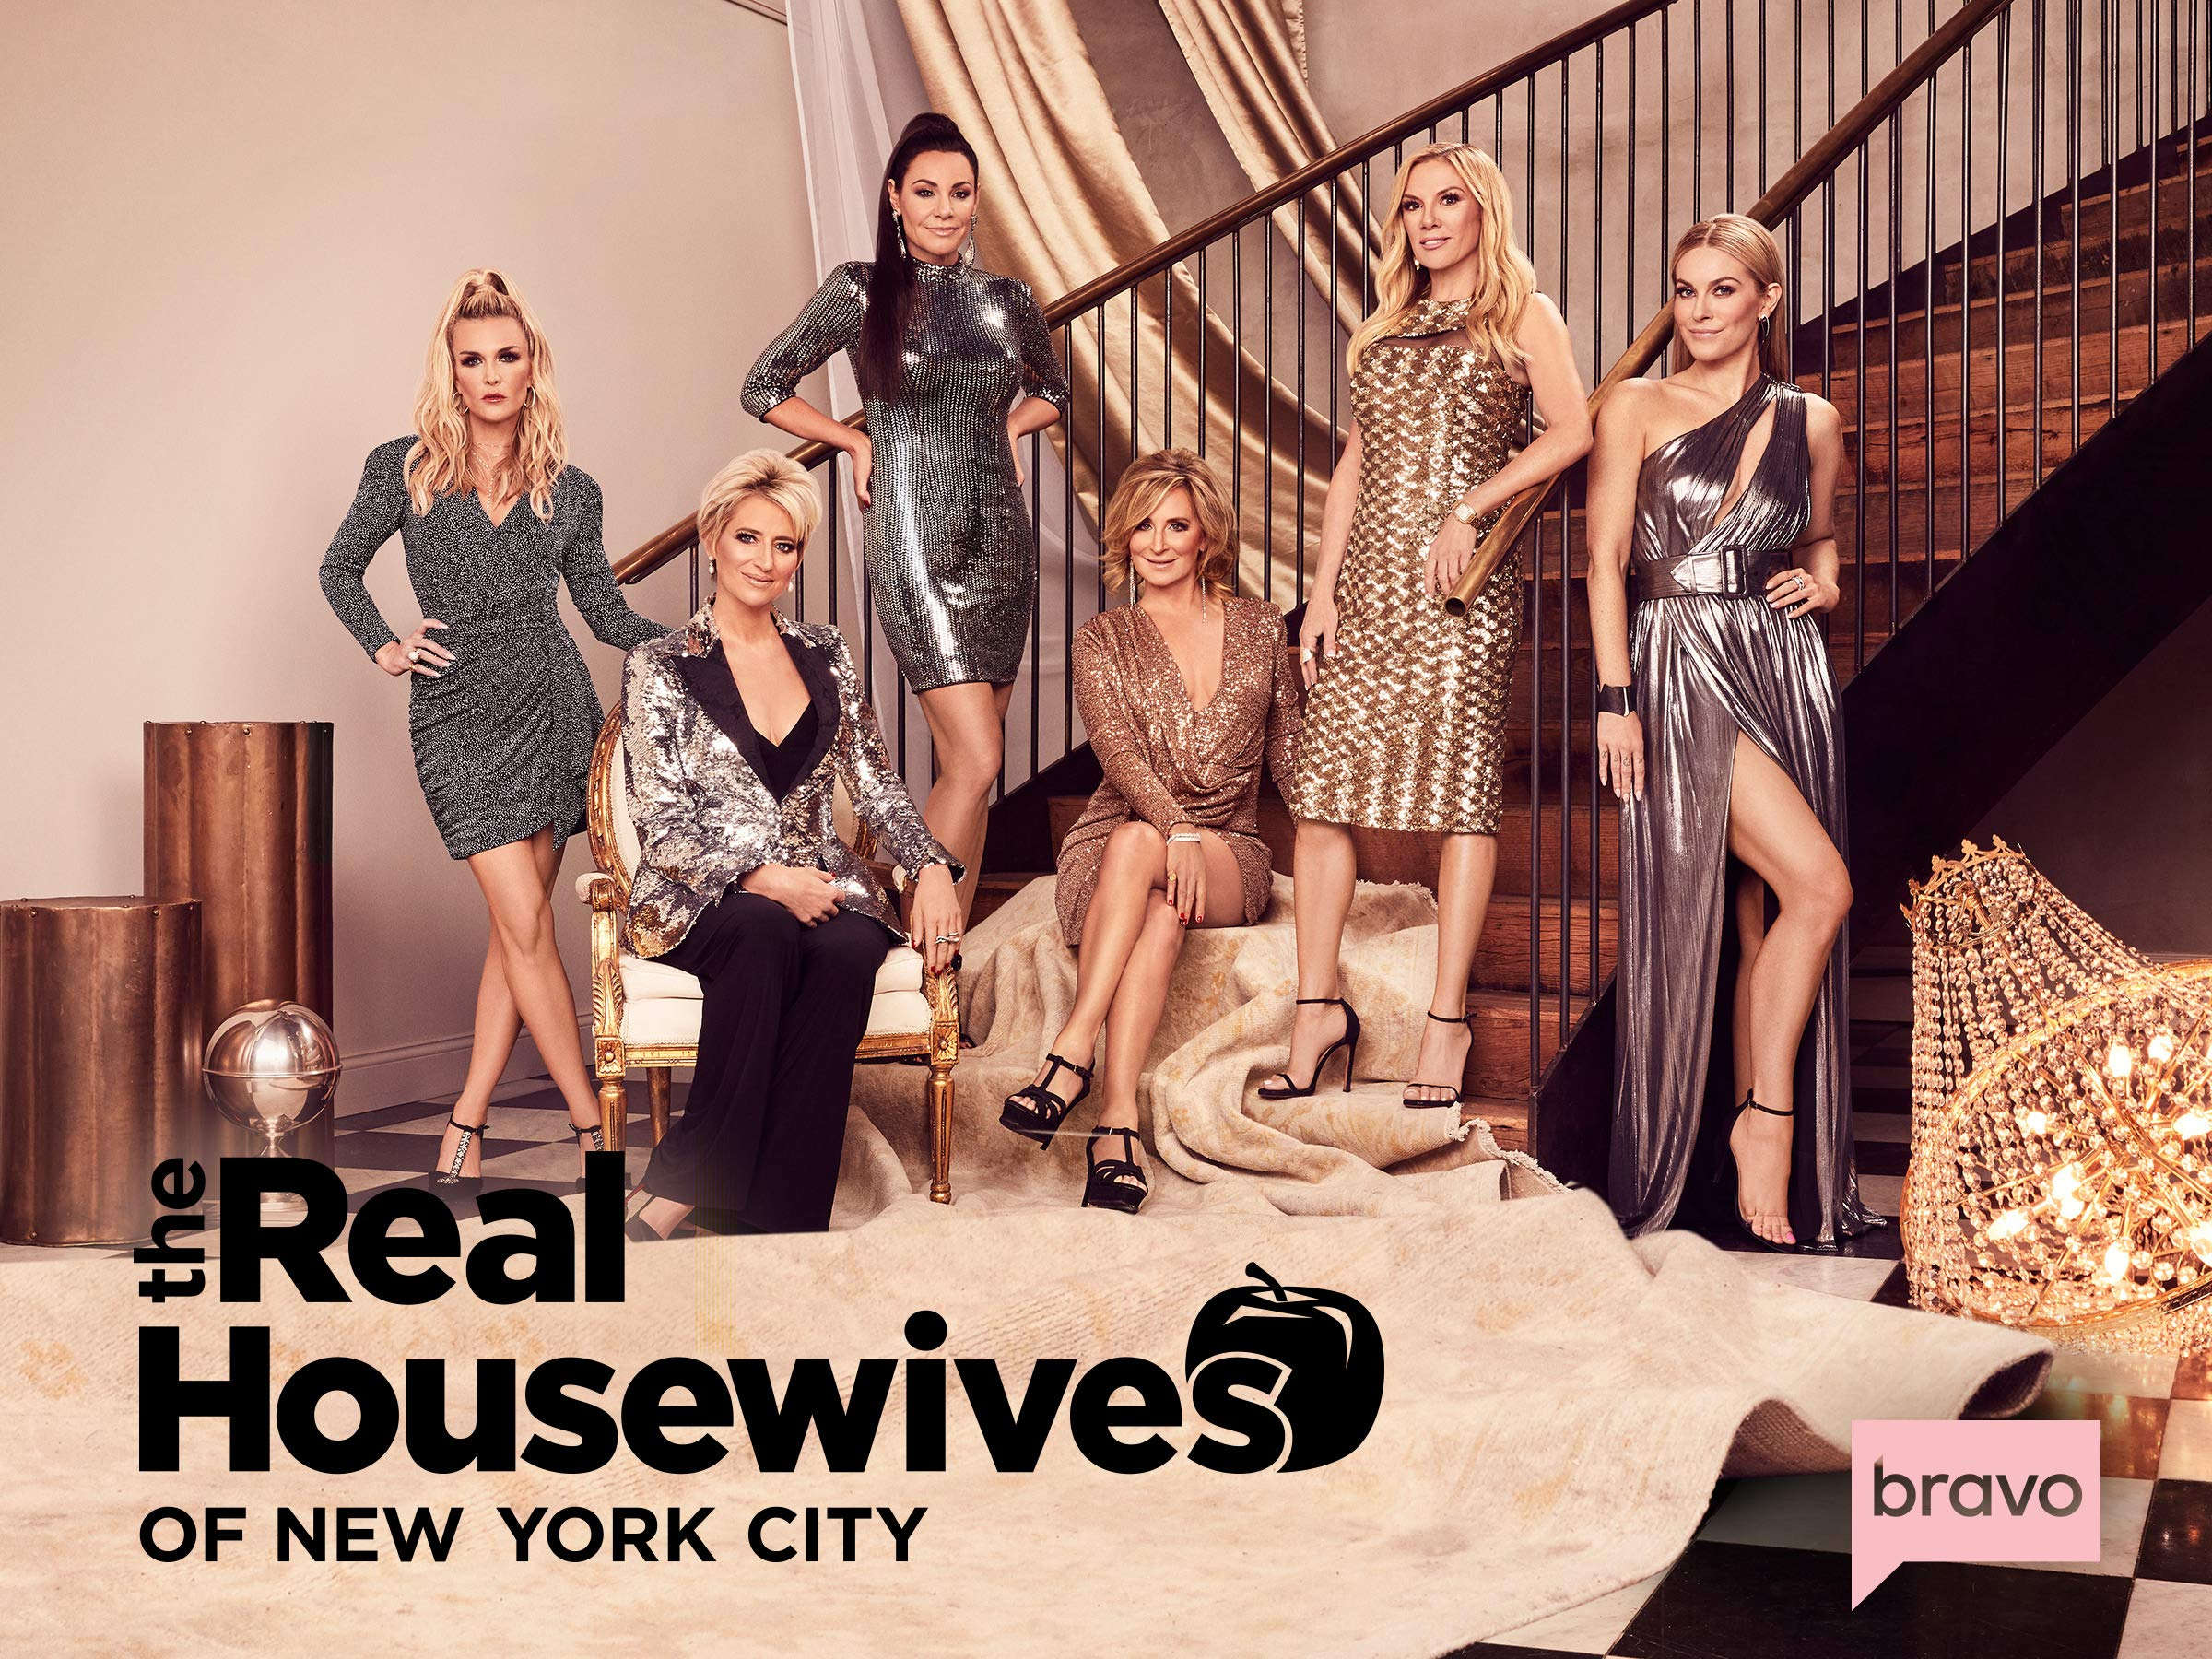 Watch The Real Housewives Of New York City Season 1 Prime Video